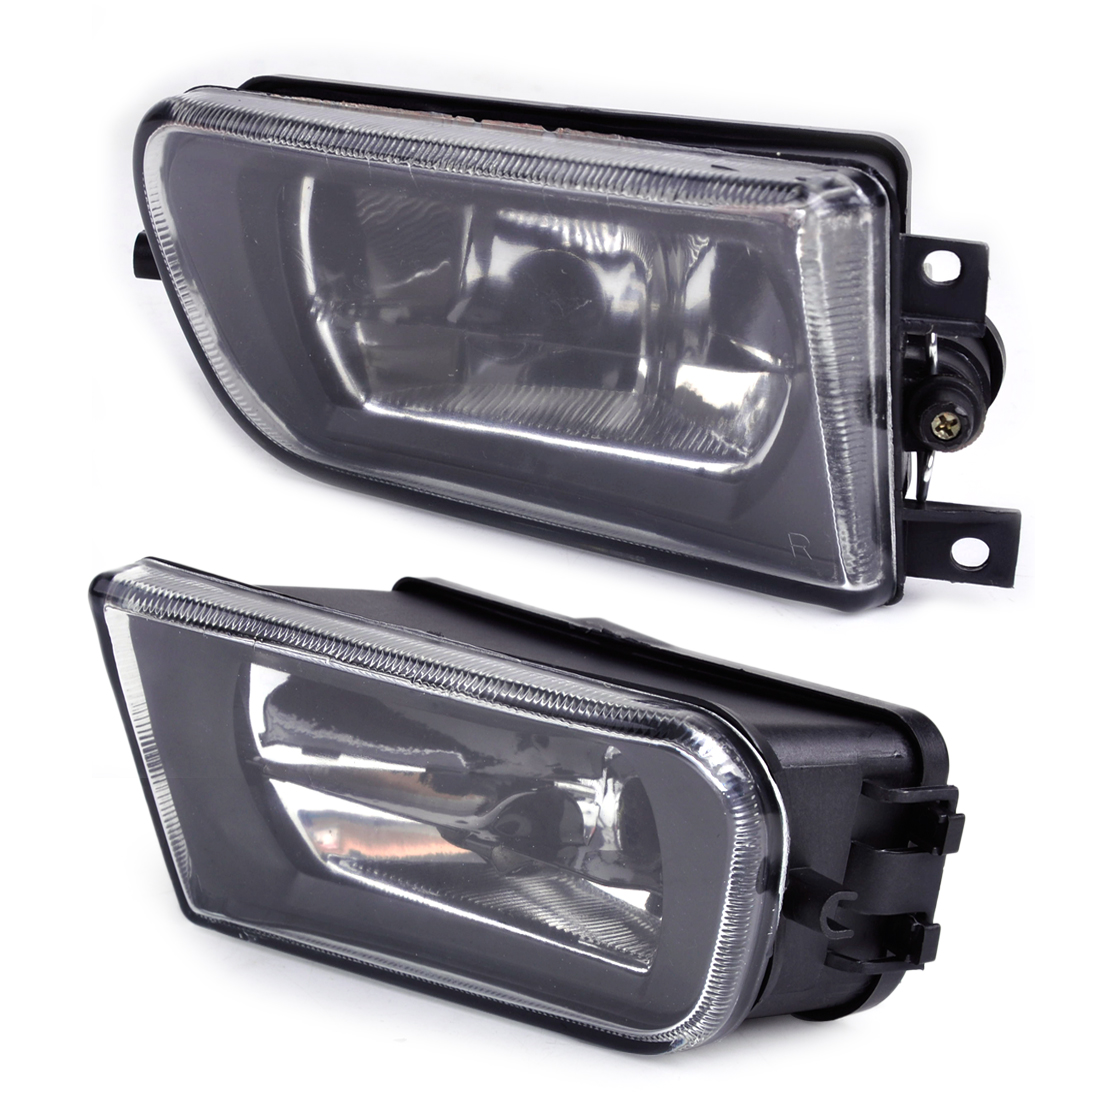 DWCX 63178360575, 63178360576 22pcs Fog Light Lamp for BMW E36 Z3 E39 5 Series 528i 540i 535i 1997 1998 1999 2000 термокружка rondell rds 496 latte 450ml page 9